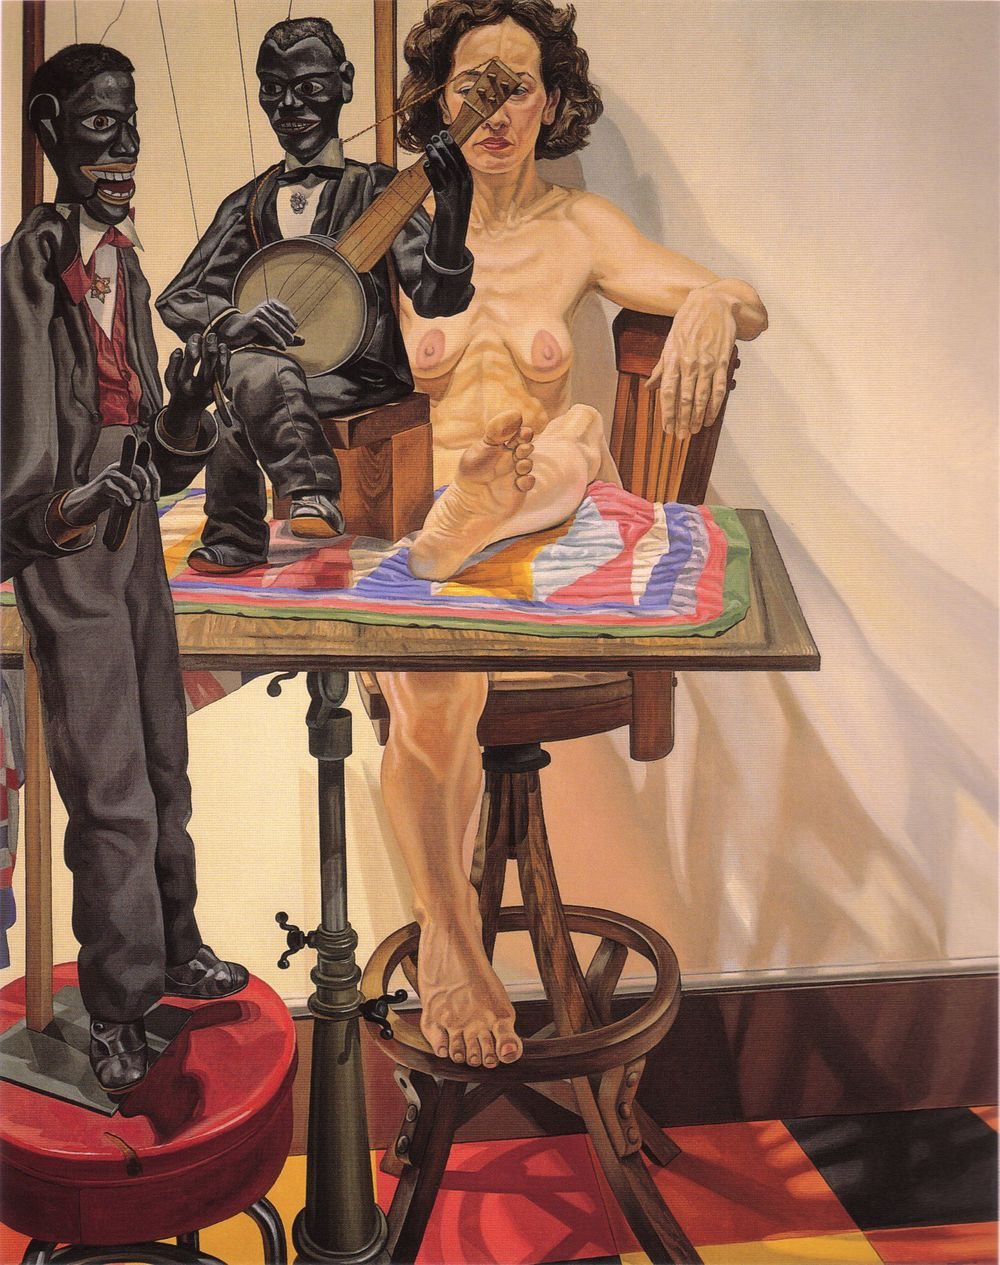 Two Minstrel Marionettes and Model , 1987 Oil on canvas 76 x 60 in